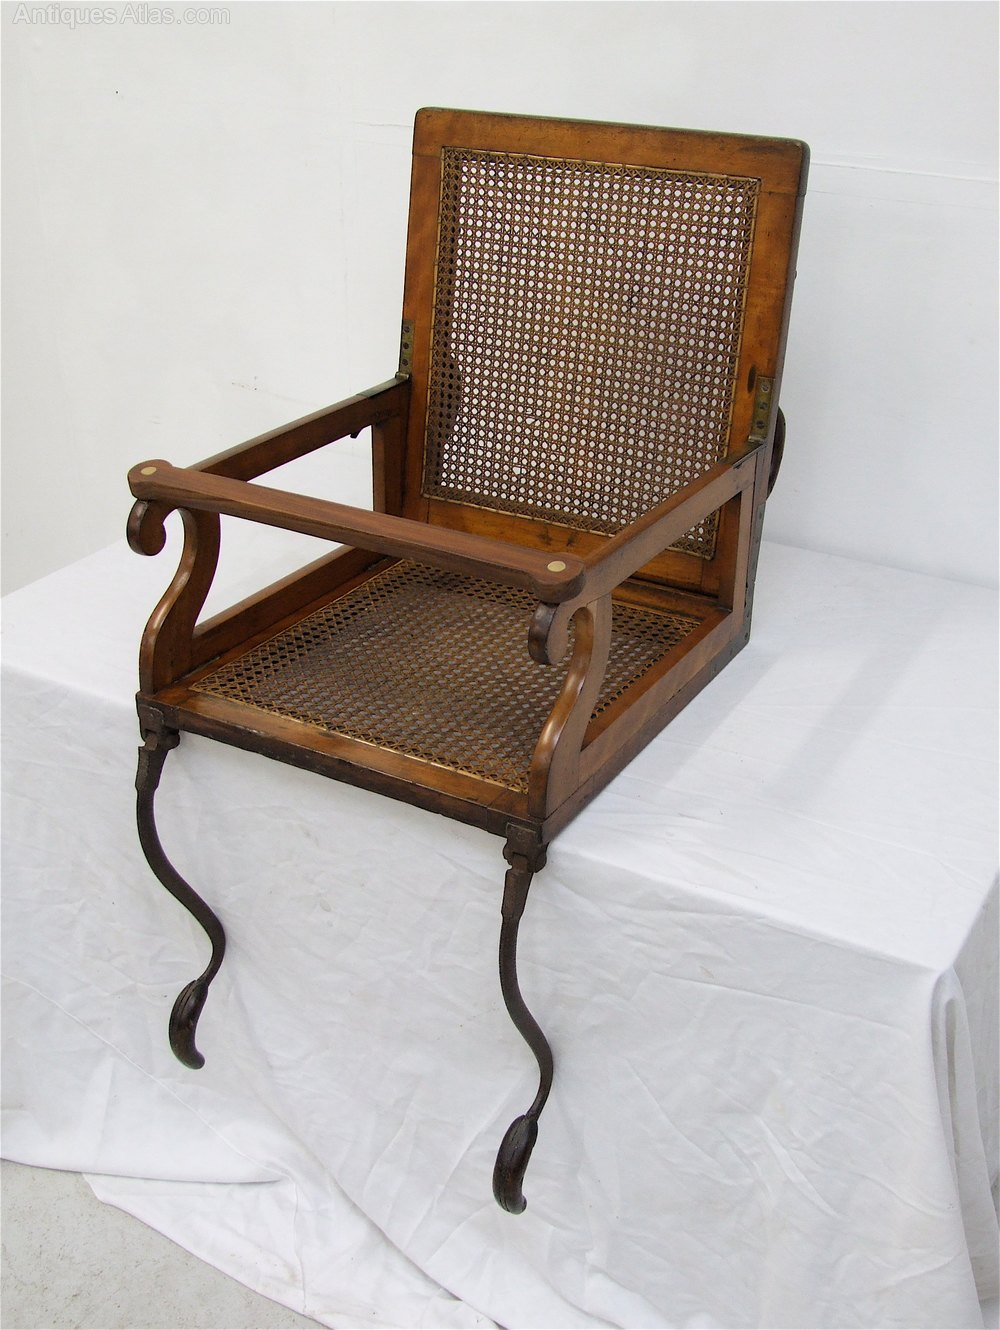 Metal Folding Chair With Scroll Back >> 19th C. Folding Campaign Travel Chair - Alderman - Antiques Atlas